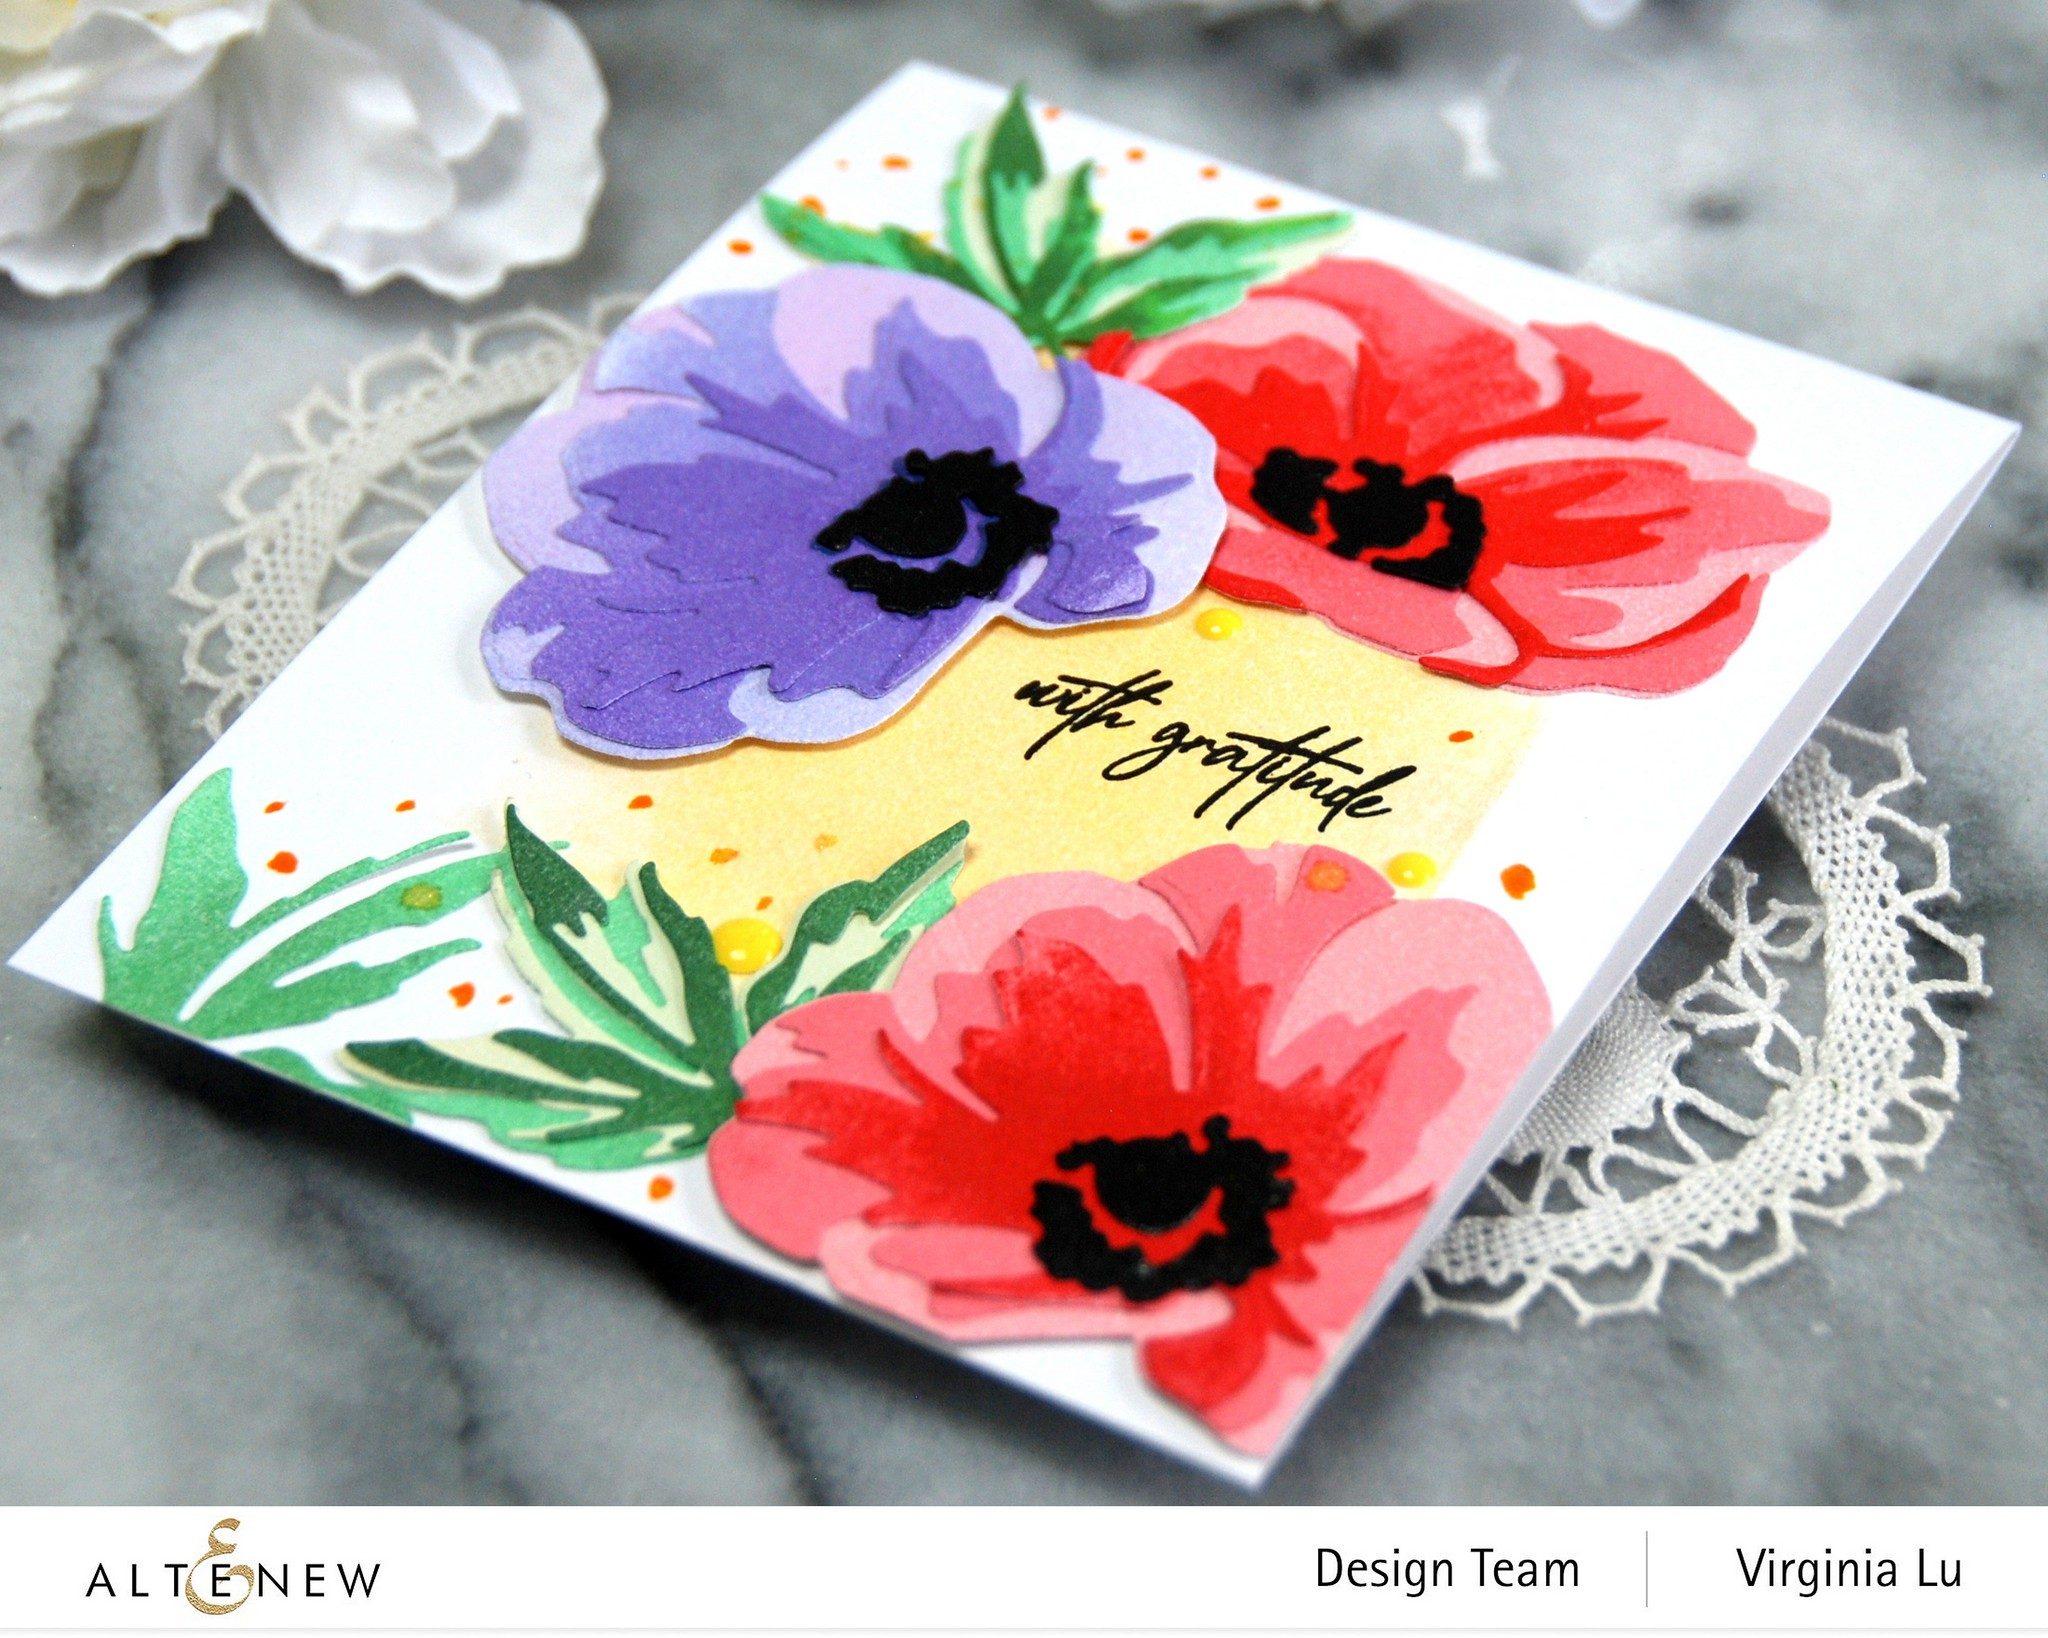 Altenew-CAF Anemone-Fragile Foliage Stamp Set-002